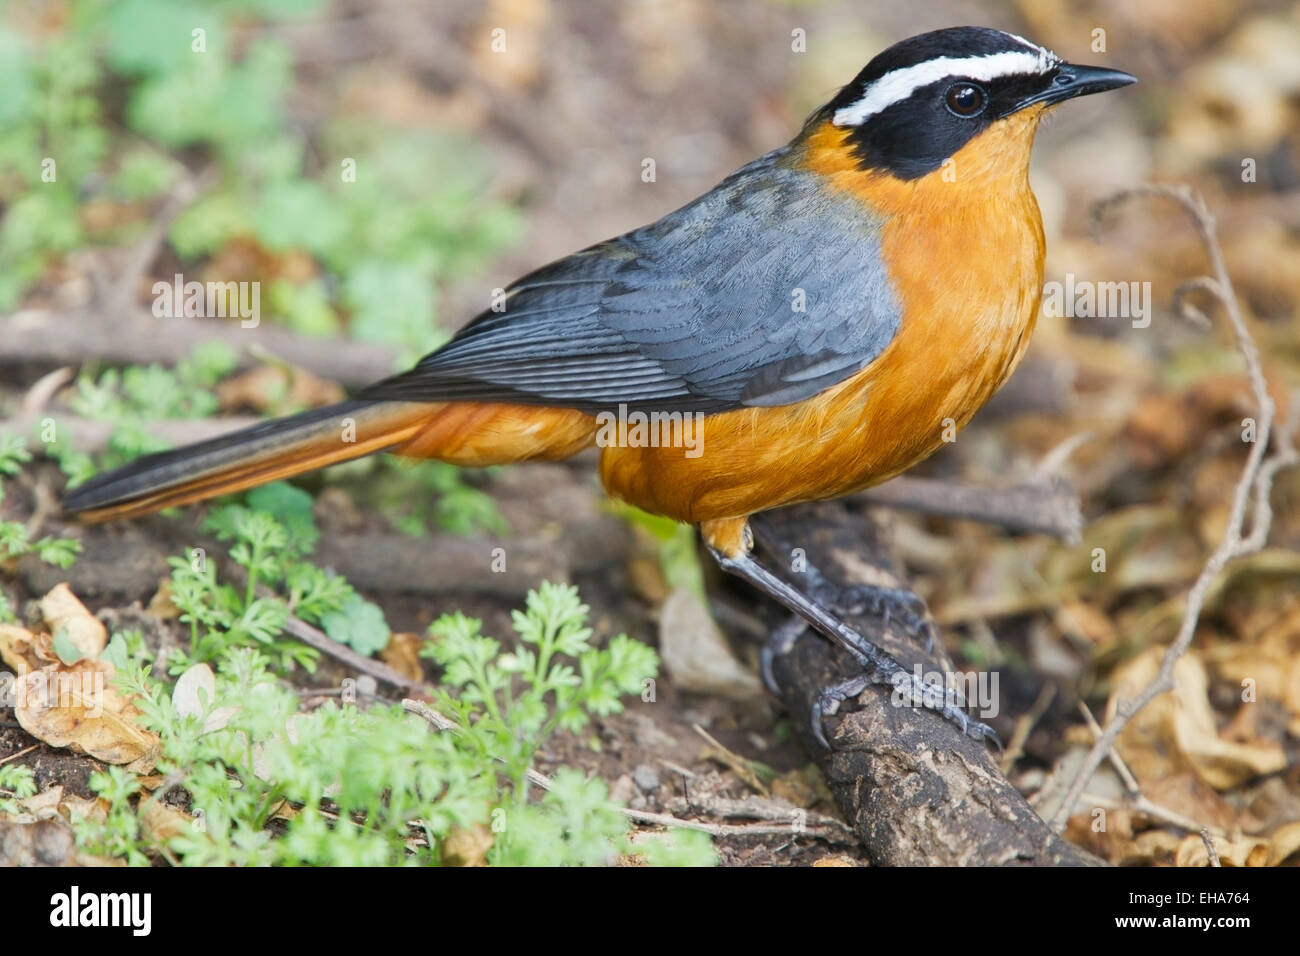 White-browed Robin Chat (Cossypha heuglini) adult perched on branch, Kenya, Africa - Stock Image